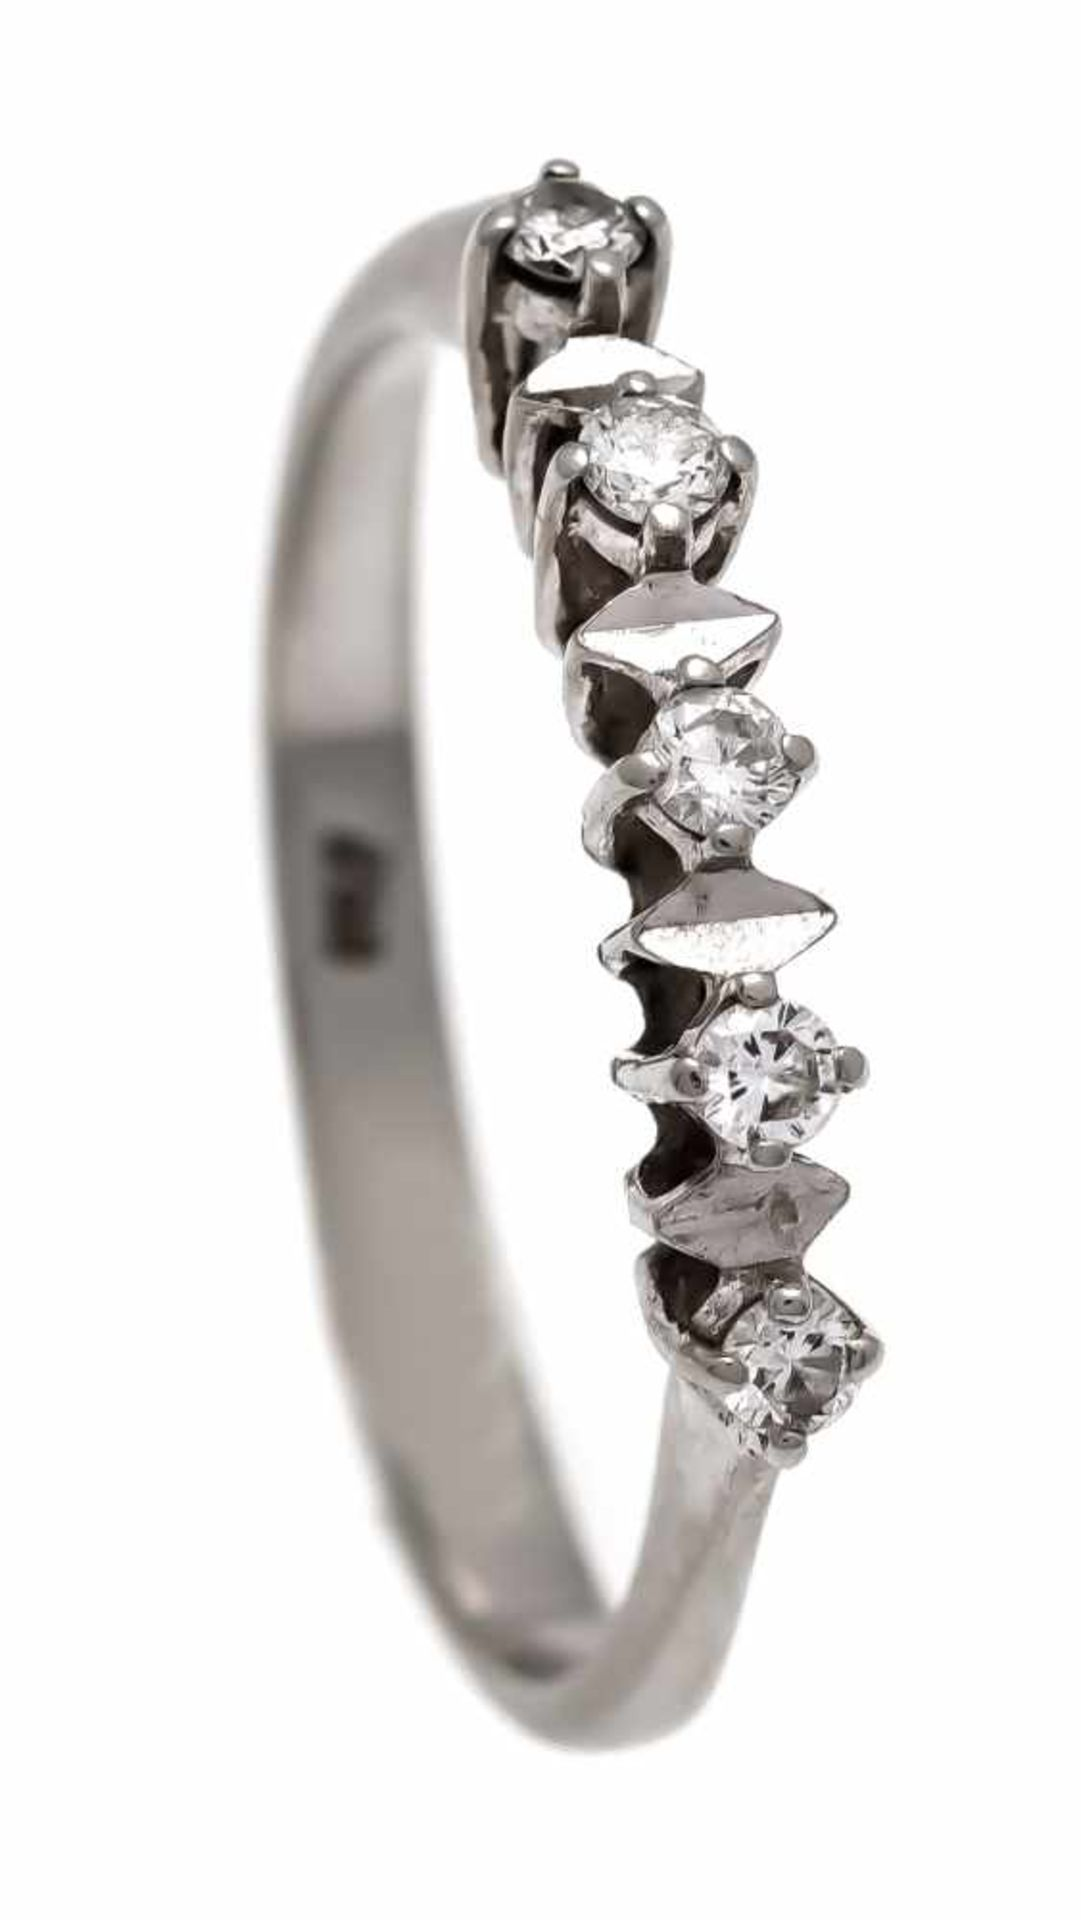 Brillant-Ring WG 750/000 mit 5 Brillanten, zus. 0,12 ct W/SI, RG 57, 2,1 gBrilliant ring WG 750/